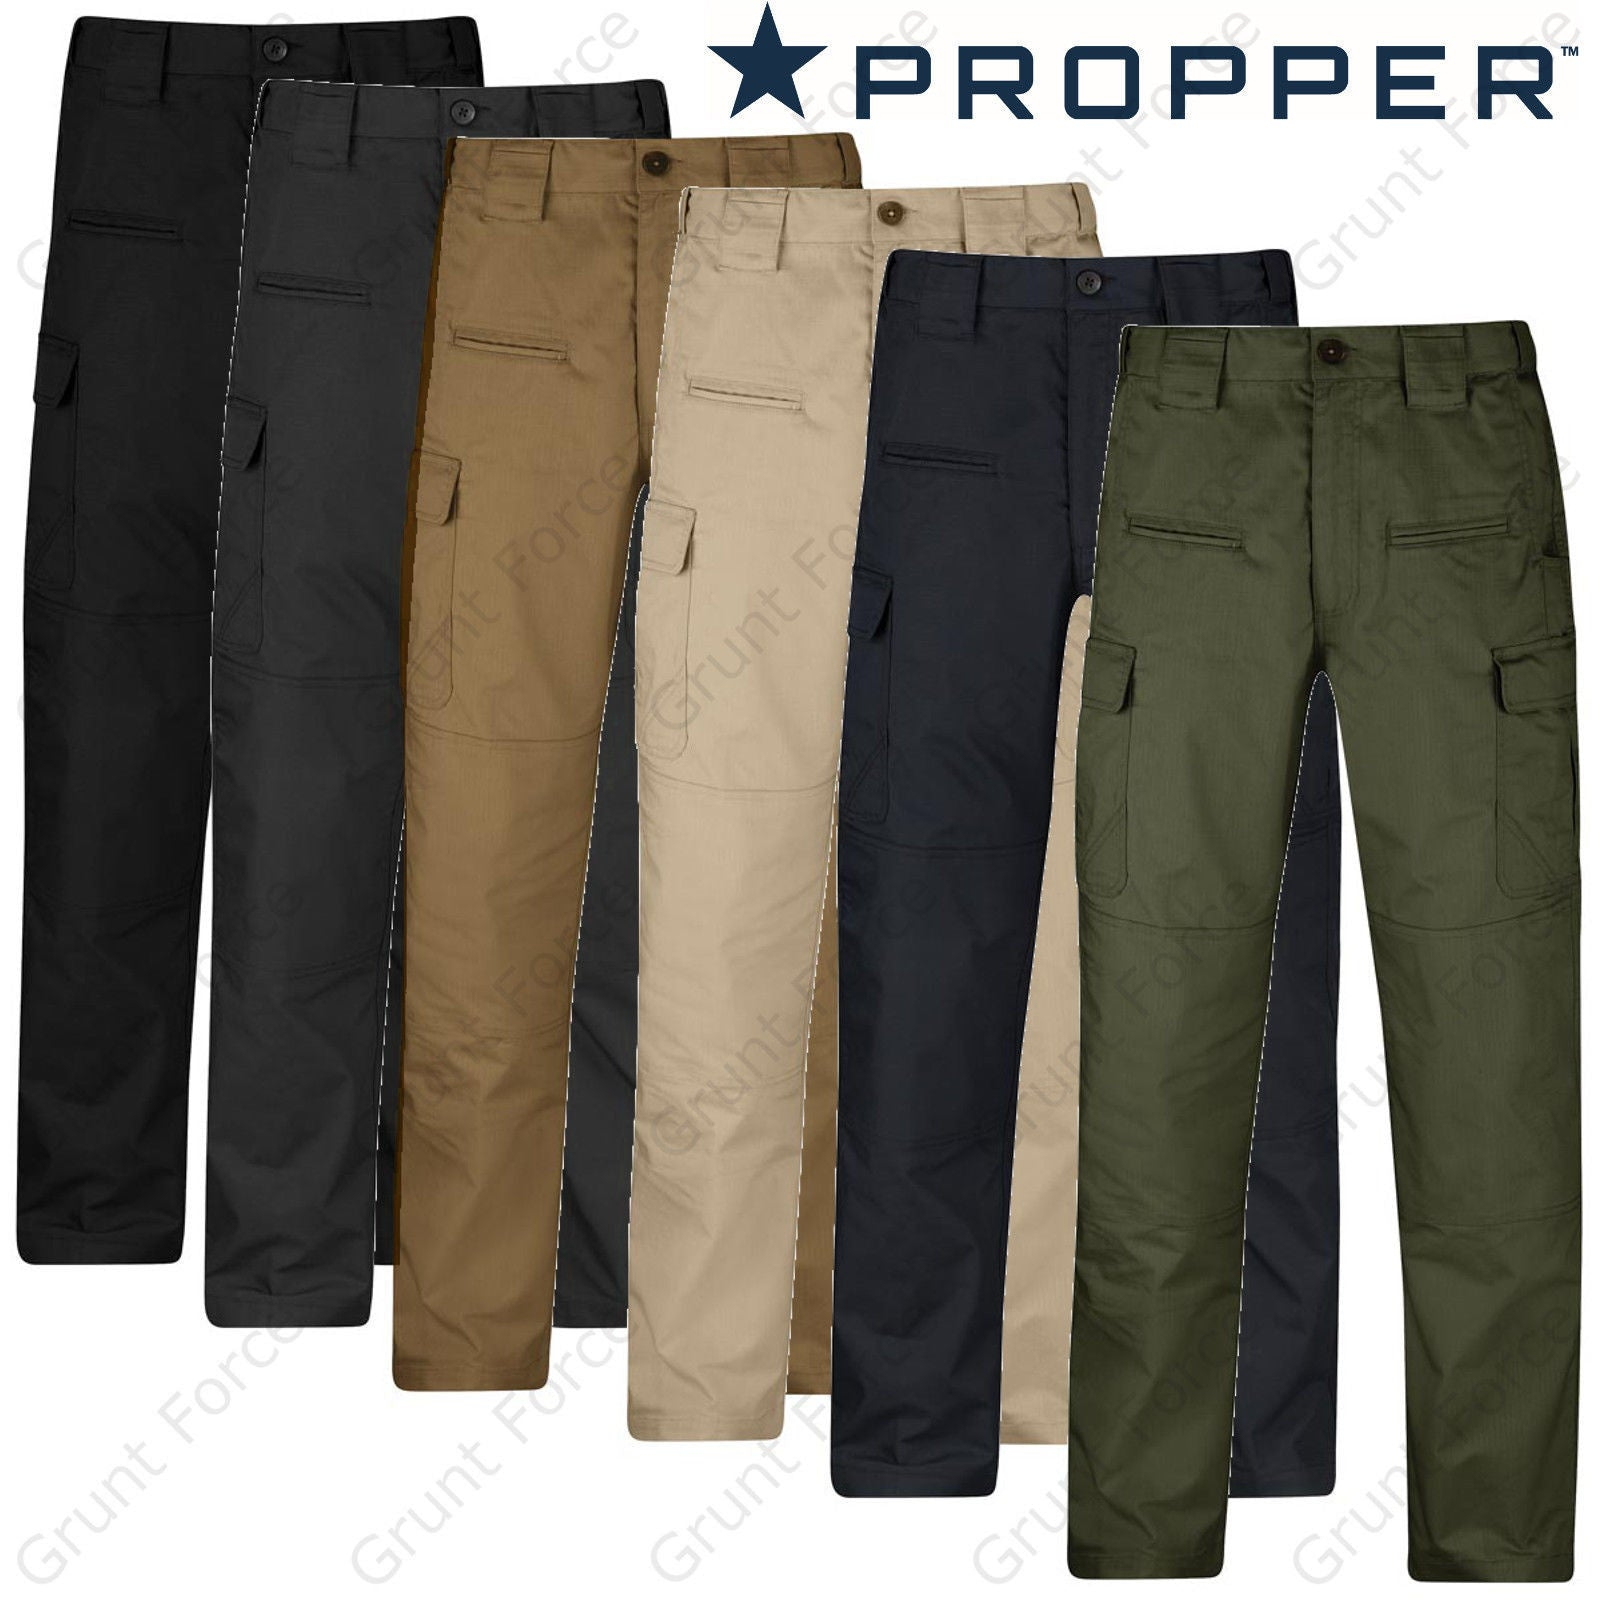 f192390c97692 Propper® Kinetic™ Pant - Mens Tactical Duty Work Pants - Six Colors  Available